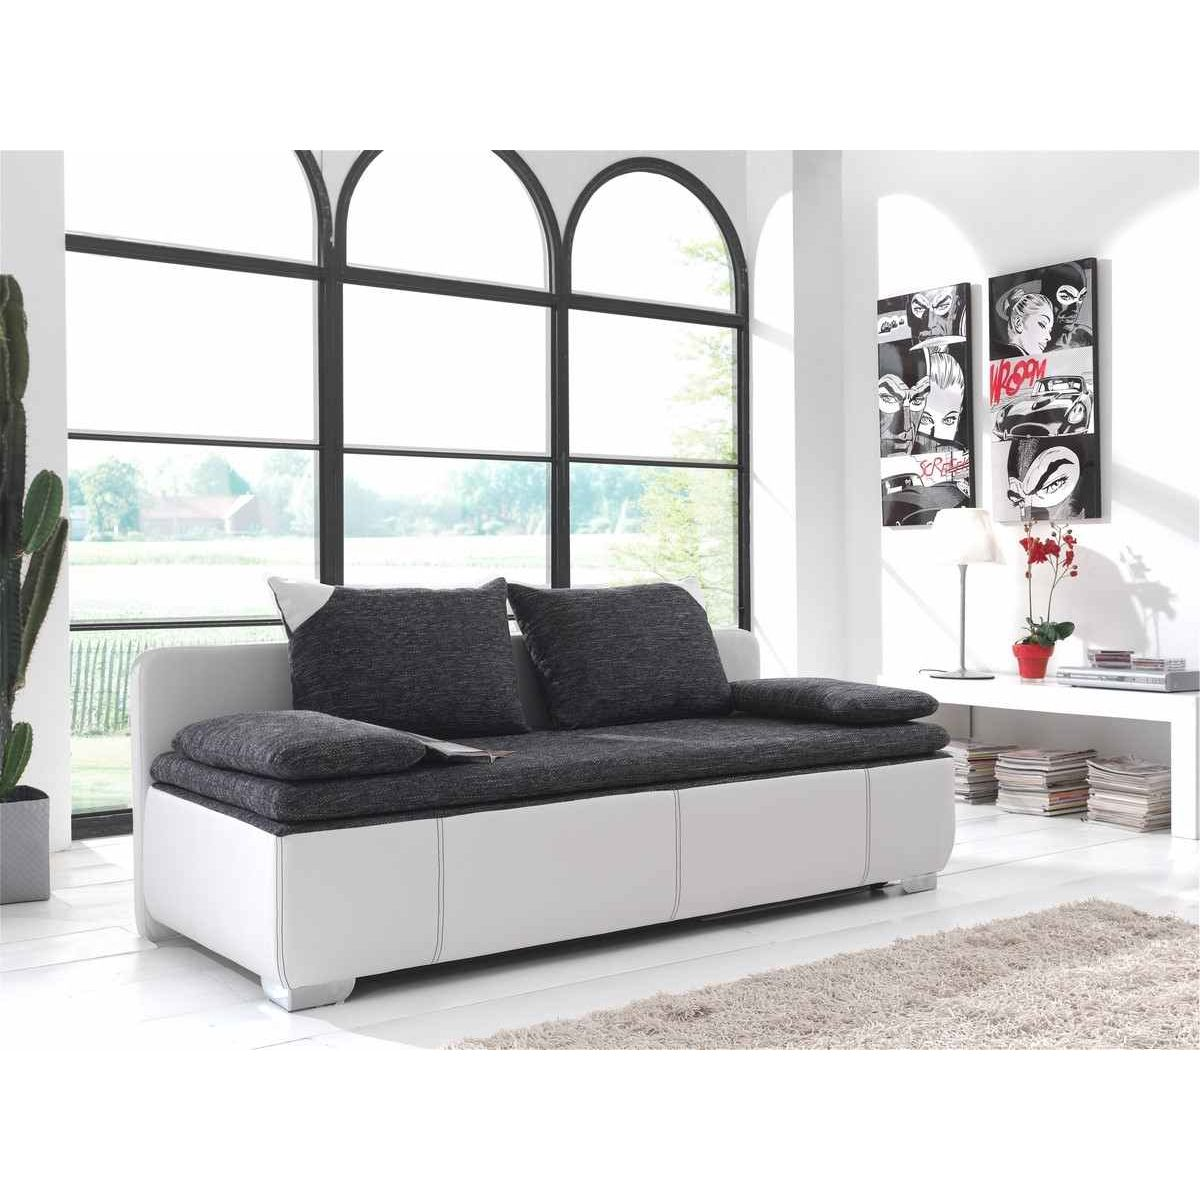 deco in paris 2 canape 3 places convertible noir et blanc willy willy noir blanc convertible. Black Bedroom Furniture Sets. Home Design Ideas